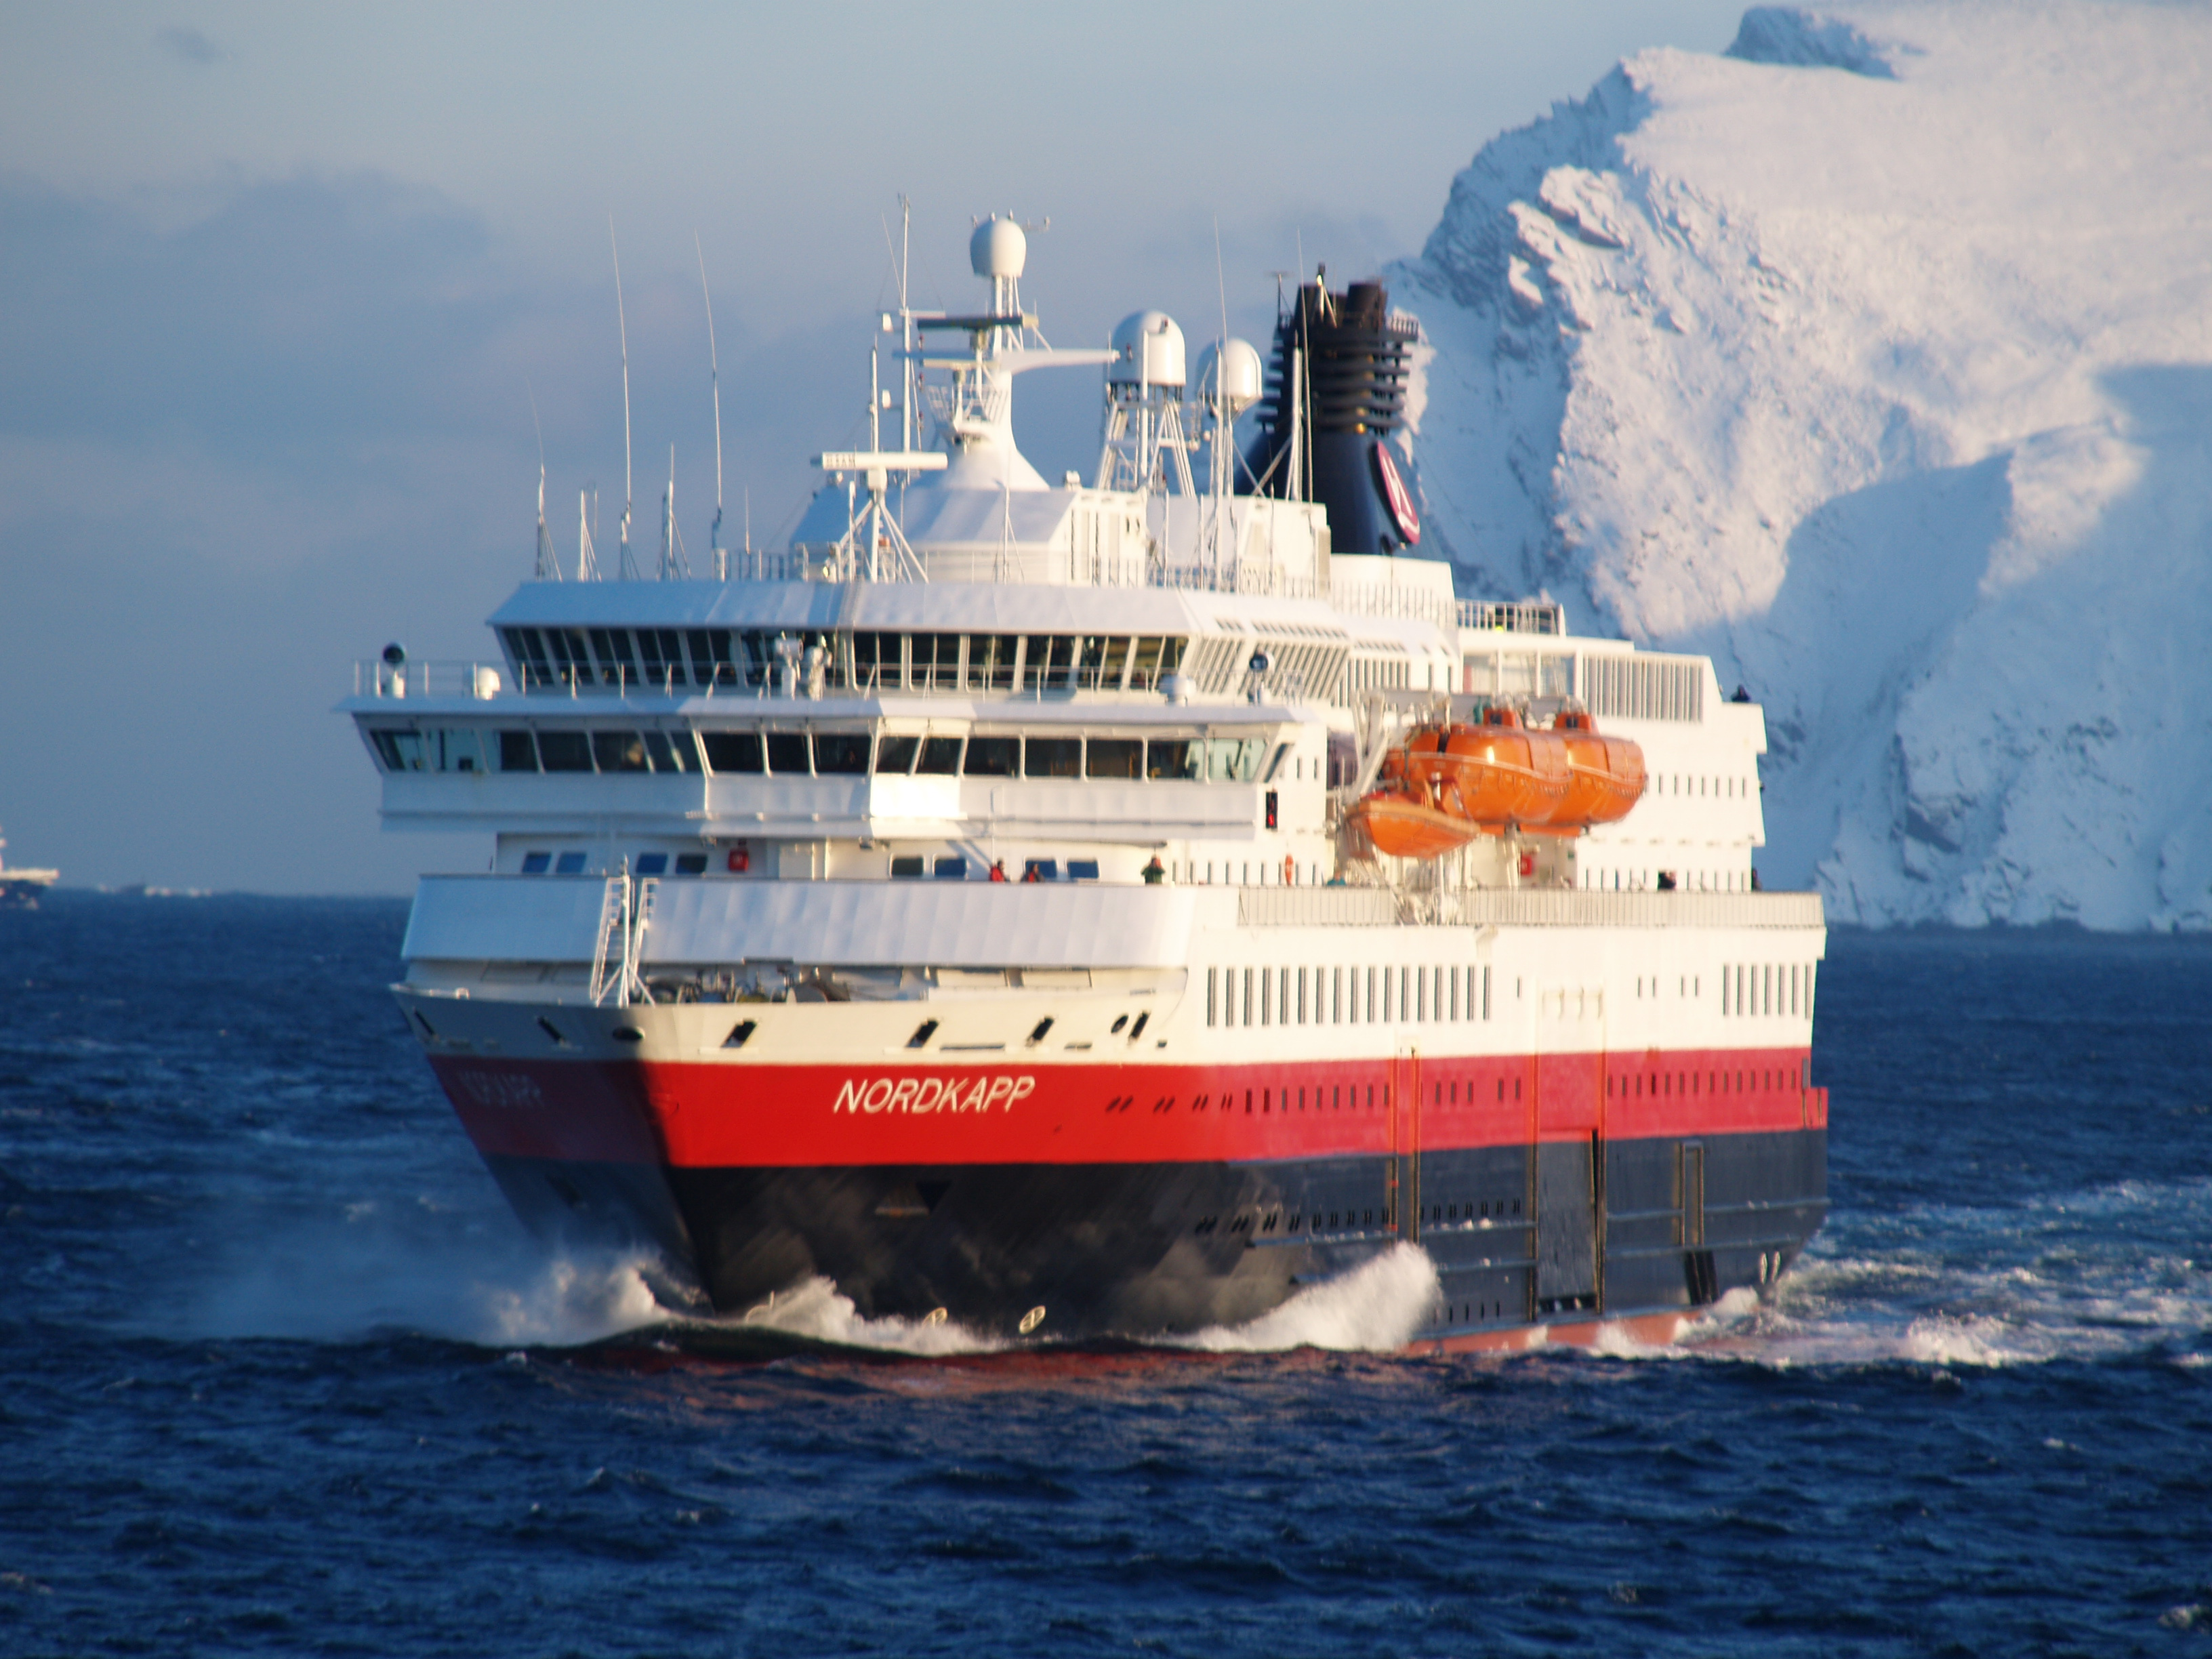 Hurtigruten Ships, the ship servicing Classic Voyage South: Kirkenes - Bergen